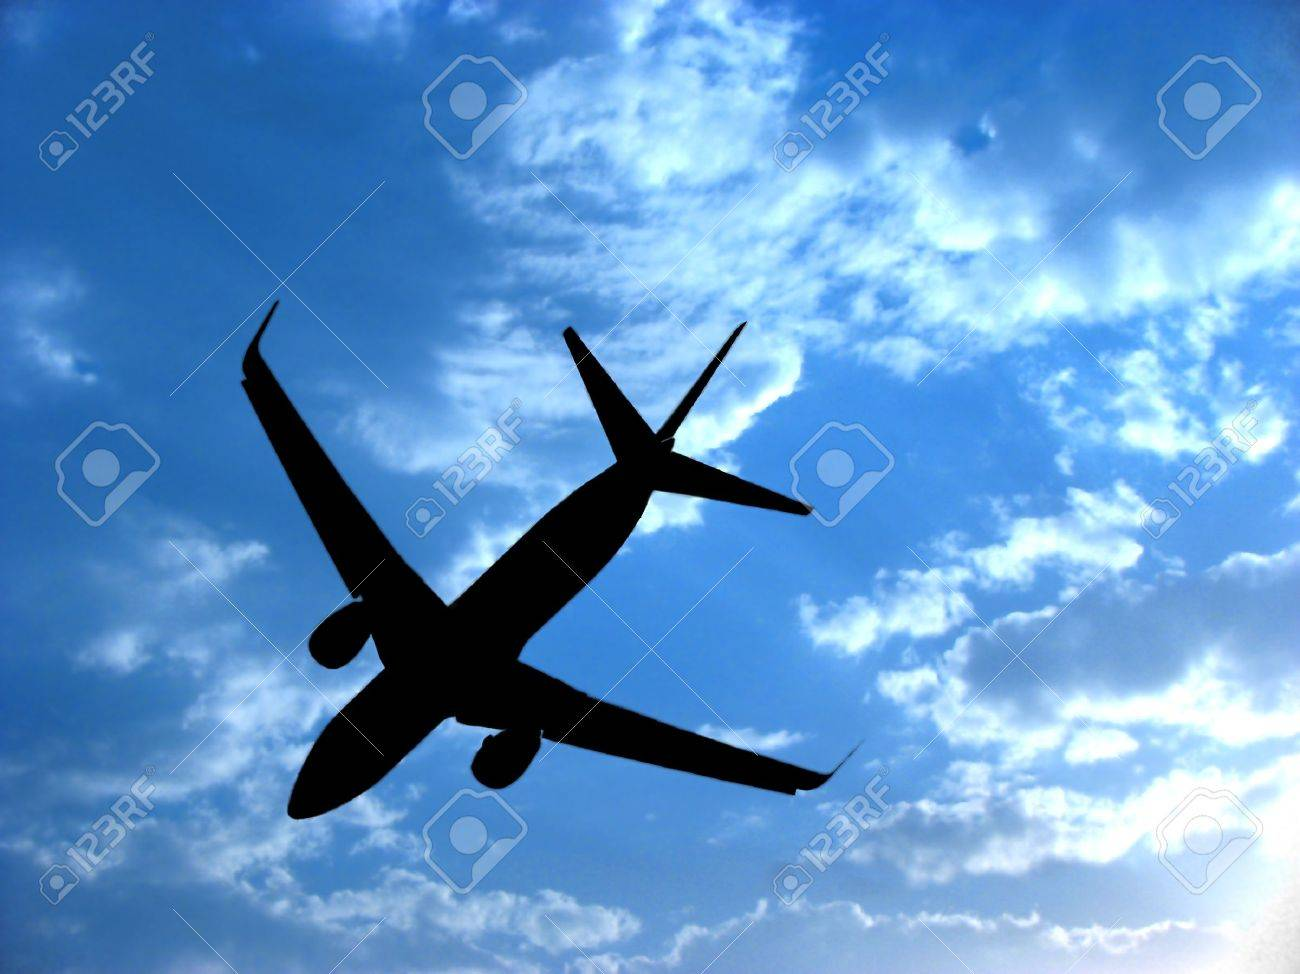 a background with a view of an airplane silhouette against the